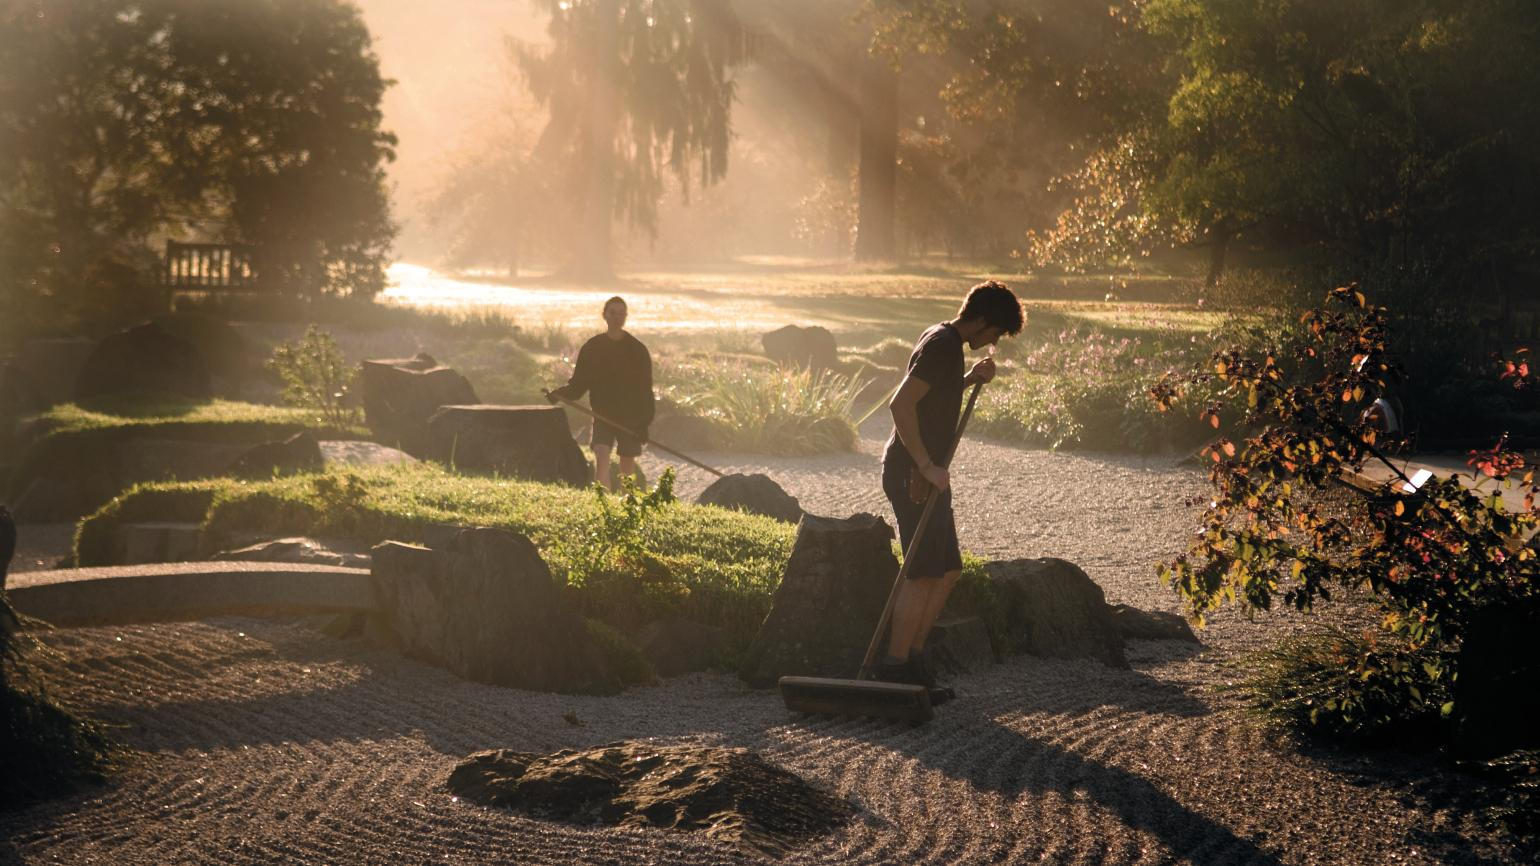 Horticulturists raking the gravel in the Japanese Landscape at Kew